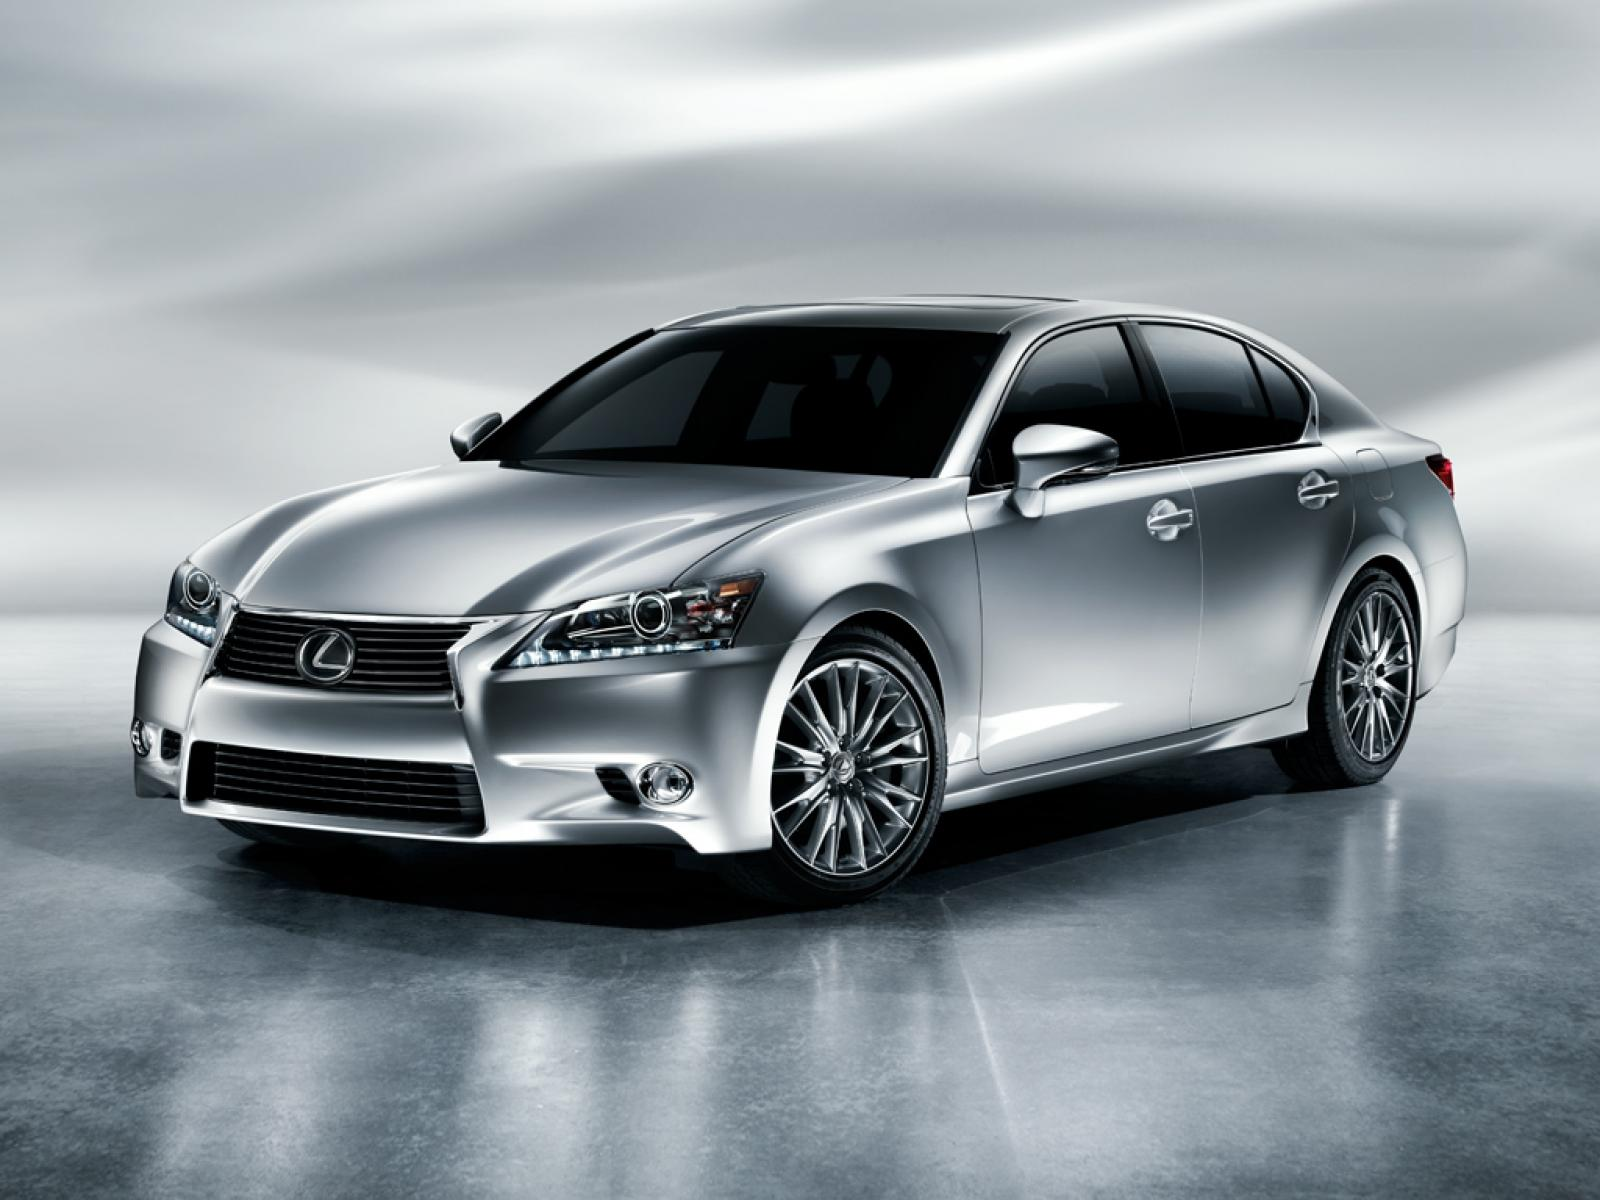 2013 Lexus GS 350 Information and photos ZombieDrive